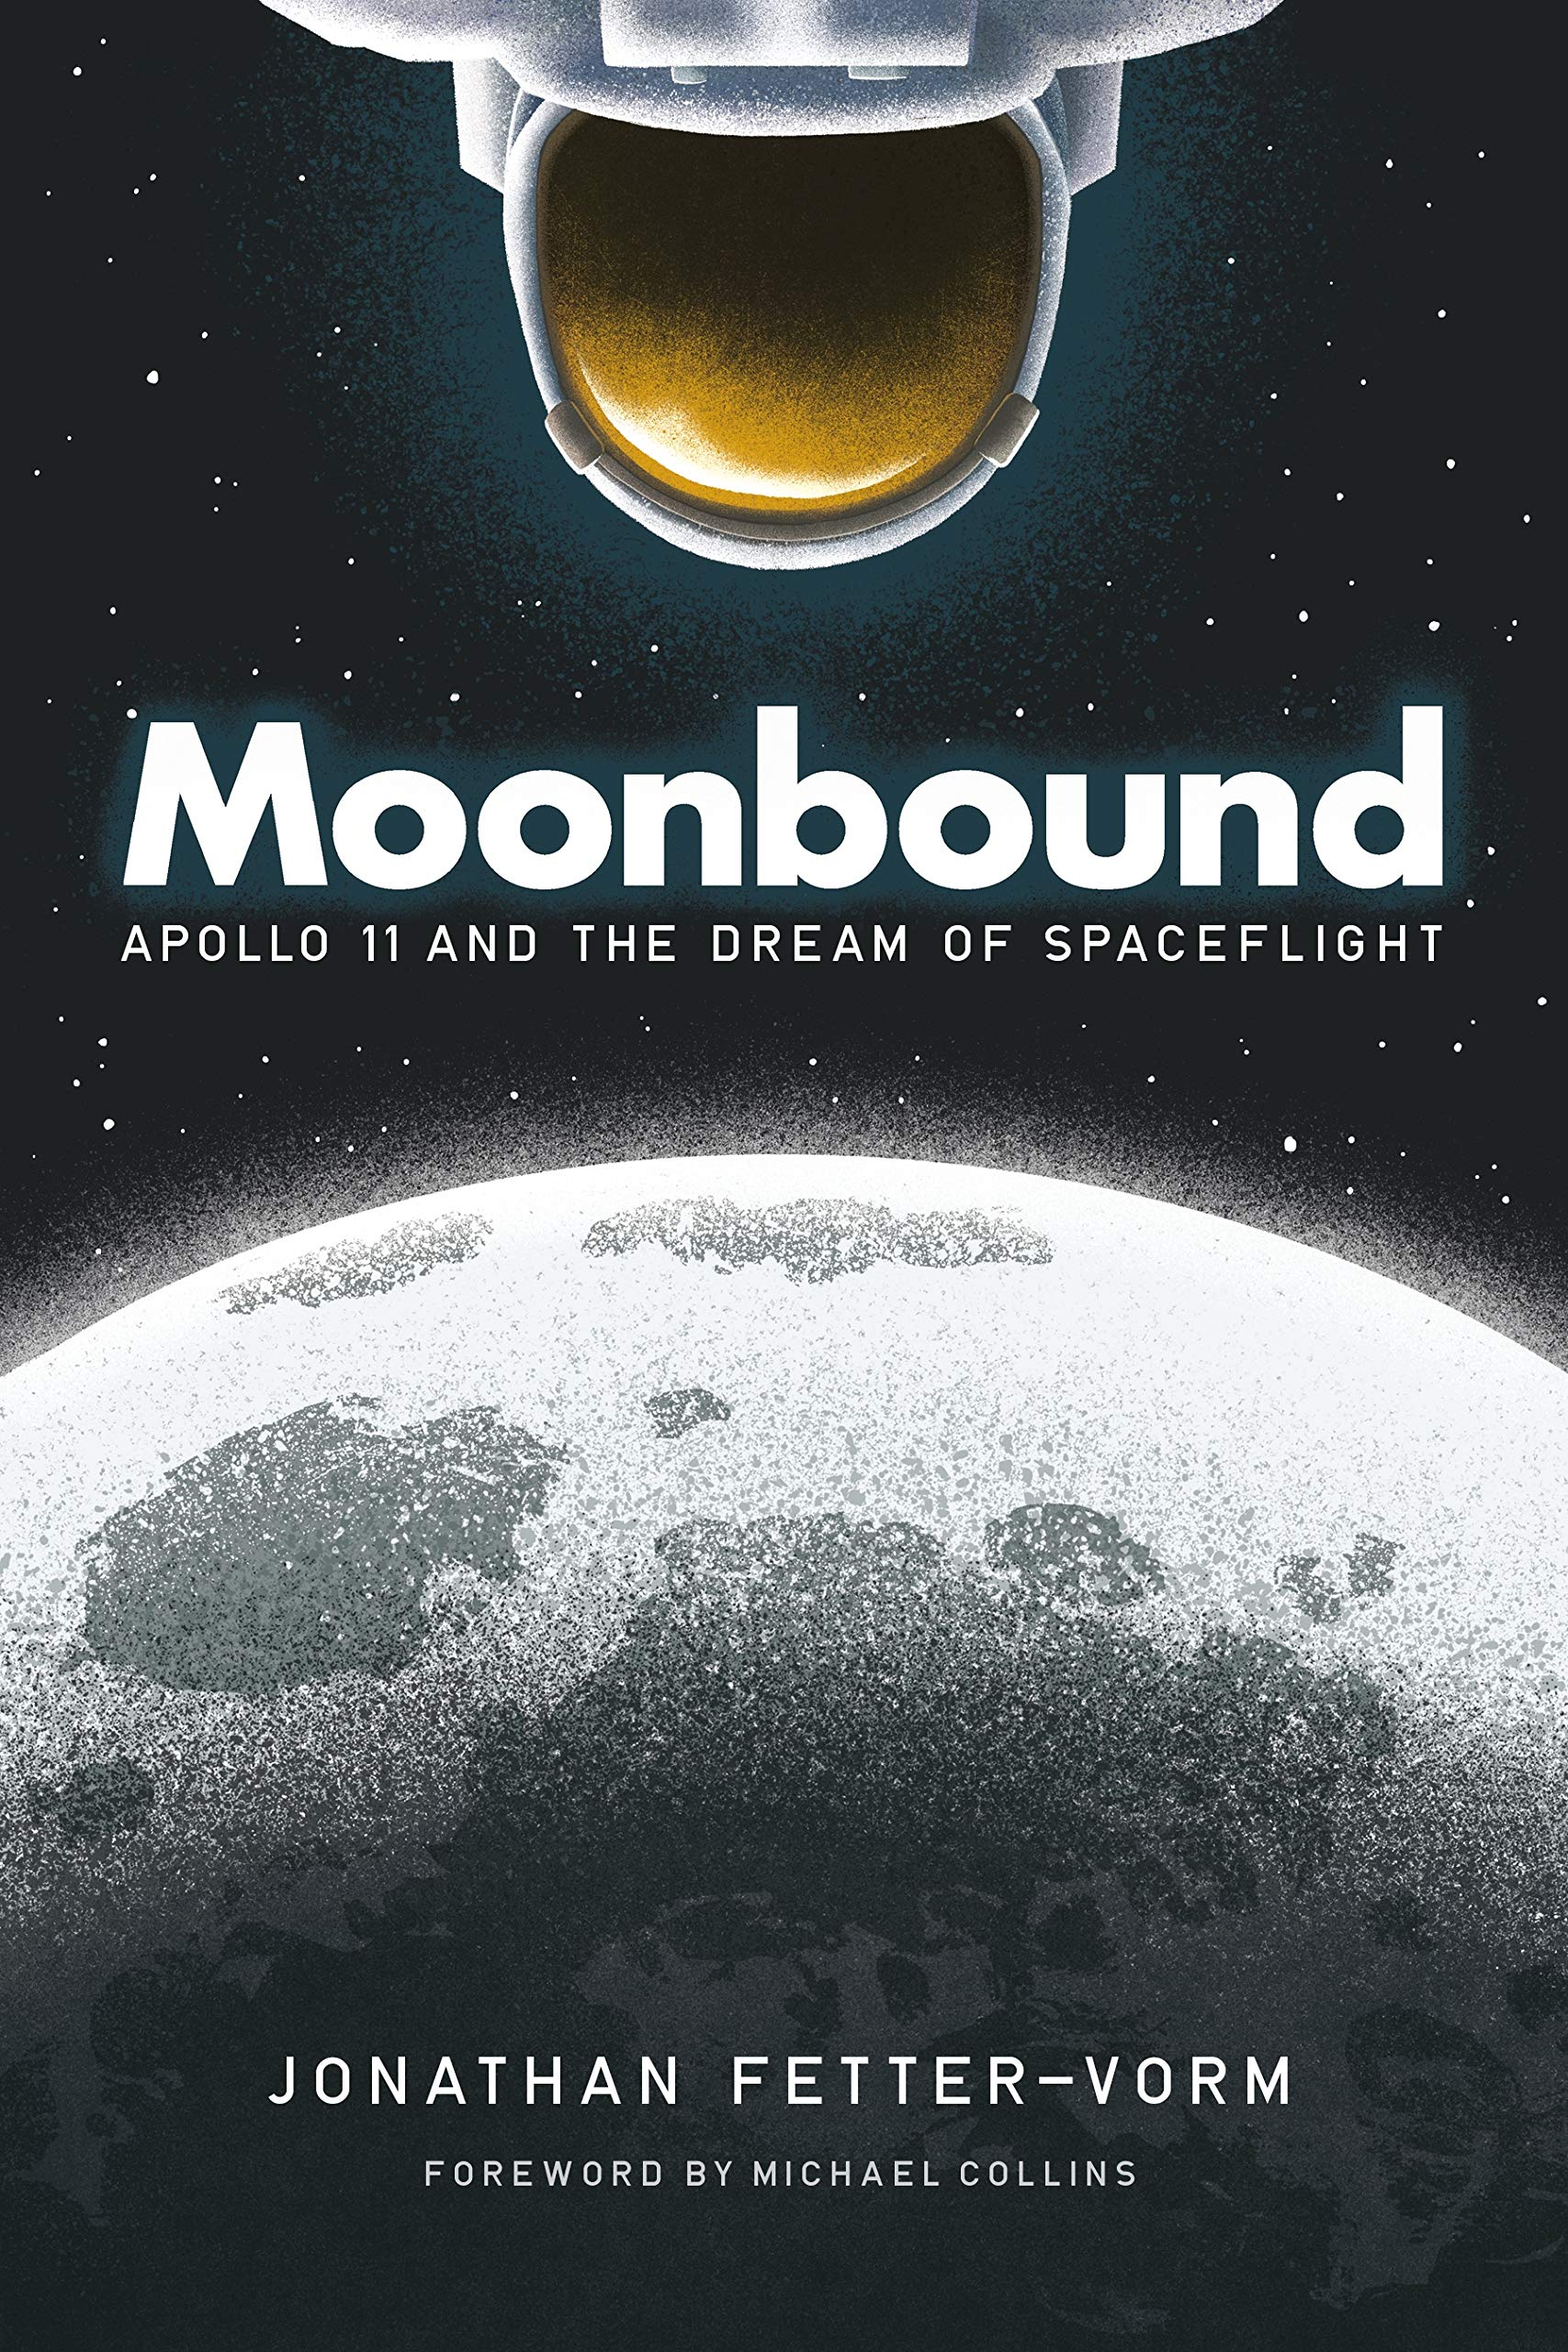 Moonbound: Apollo 11 and the Dream of Spaceflight   By Jonathan Fetter-Vorm, Hill and Wang, 2019